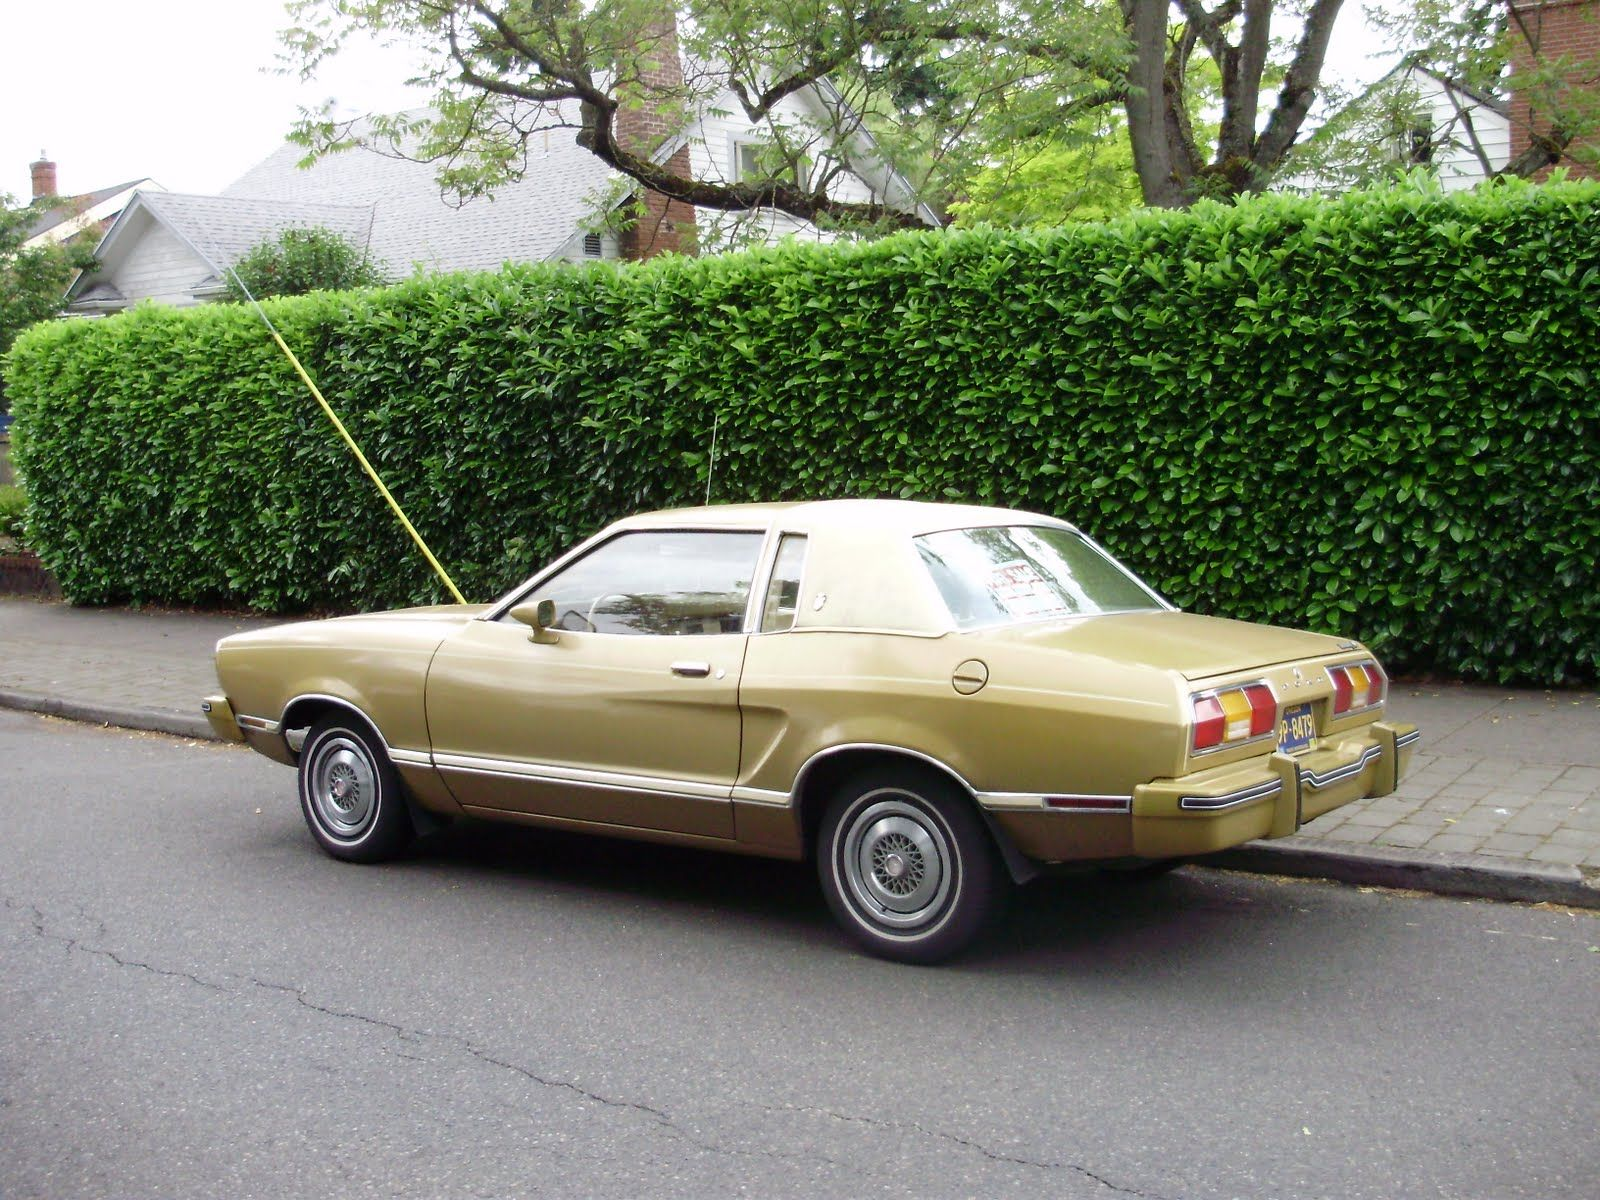 Best My First Car Was A 1977 Ford Mustang Chocolate Brown With A Tan Roof Wish I Could Find The 400 x 300